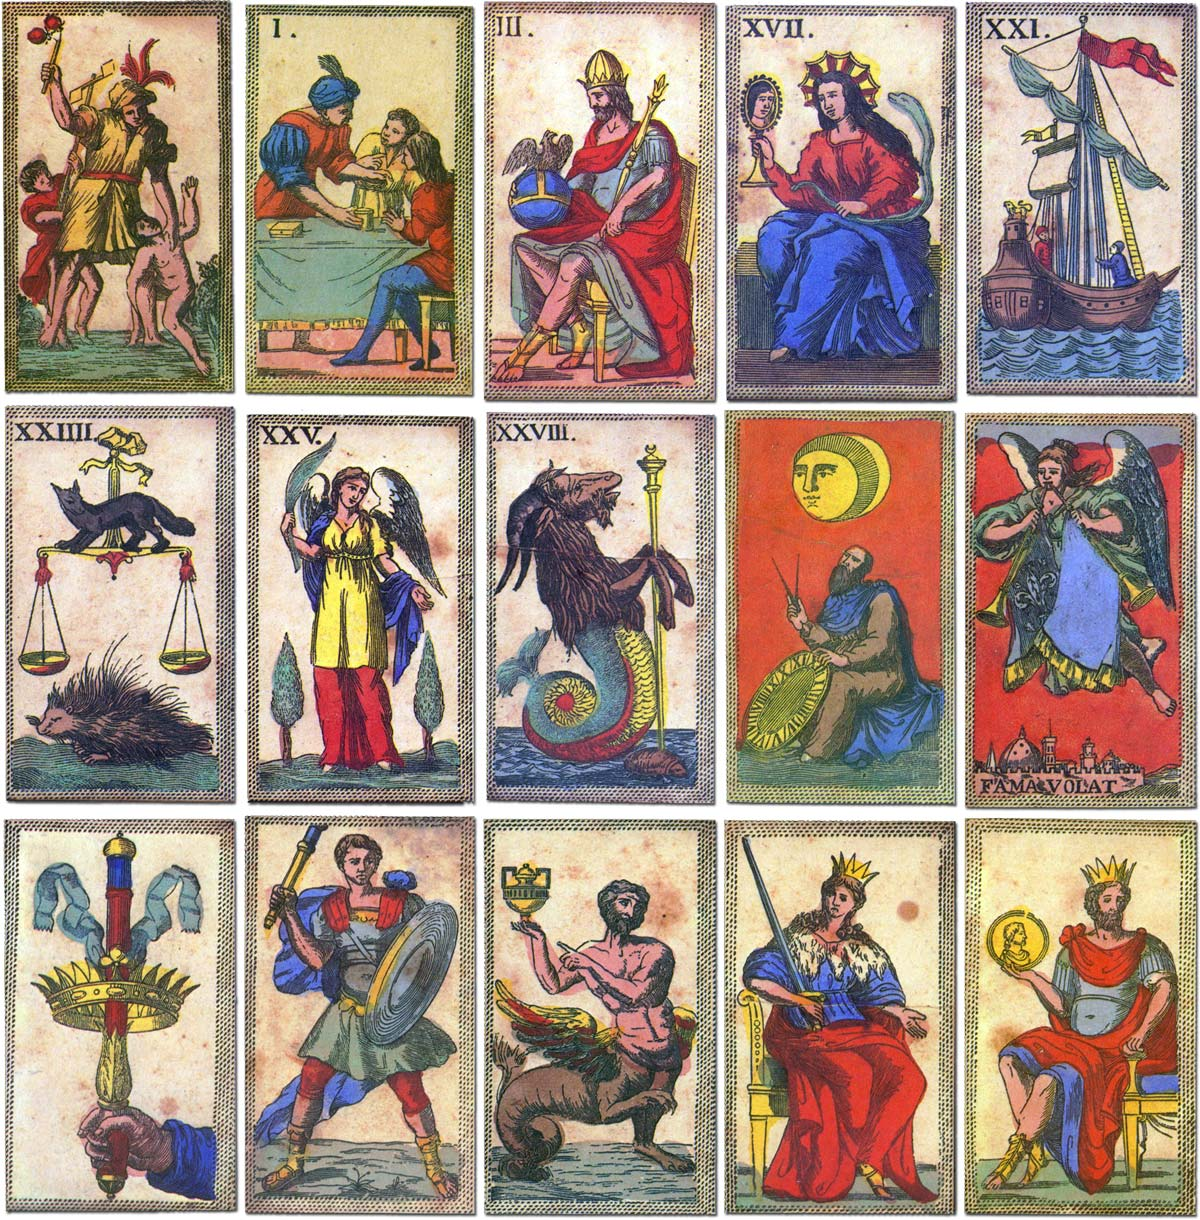 Minchiate cards originally published in Italy in 1850 and published as a facsimile by Il Meneghello, 1986